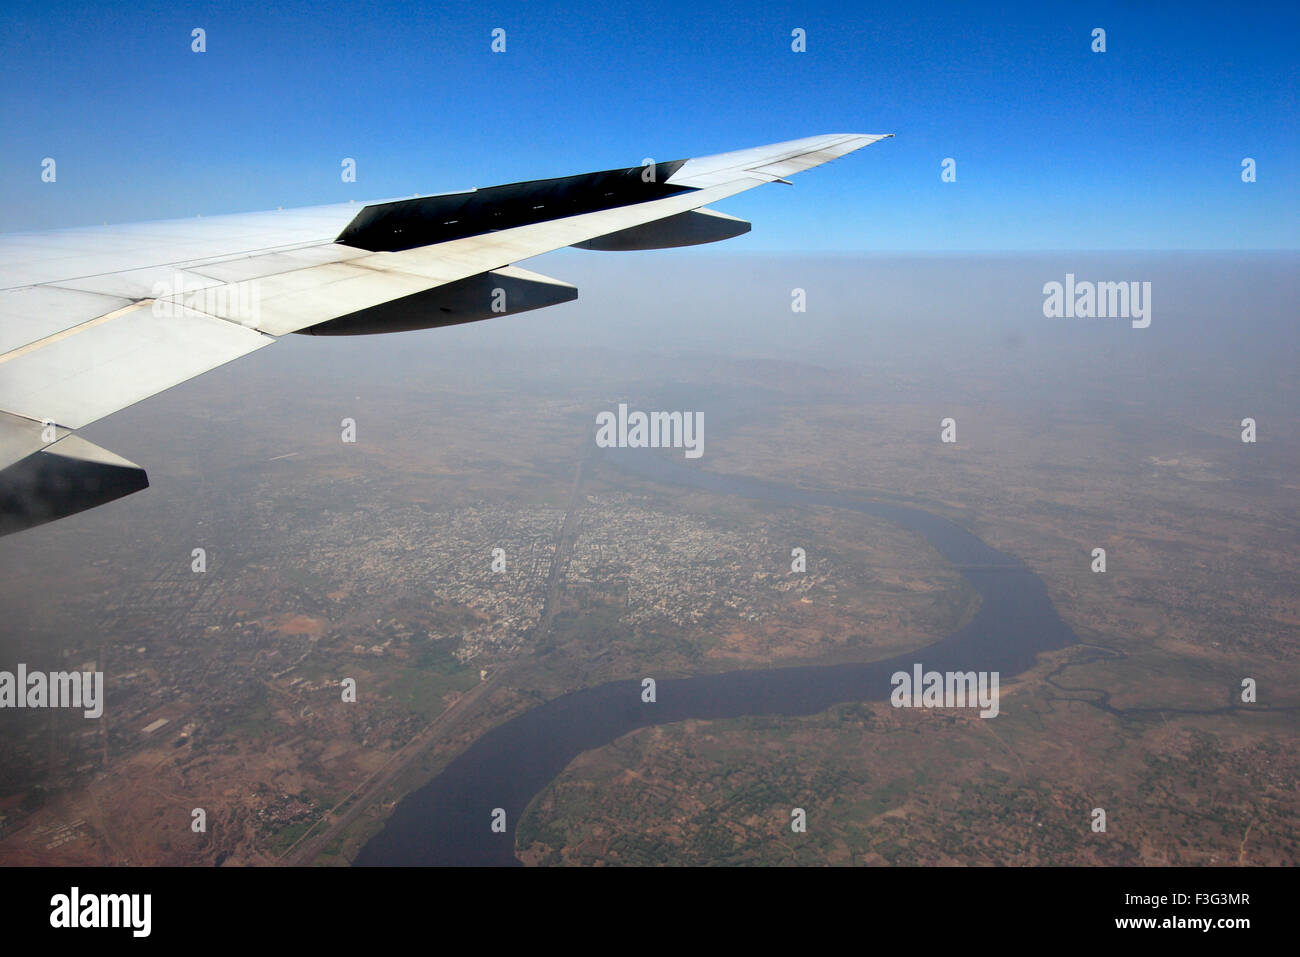 Images from aero plane in flight before landing ; Mumbai Bombay ; Maharashtra ; India - Stock Image